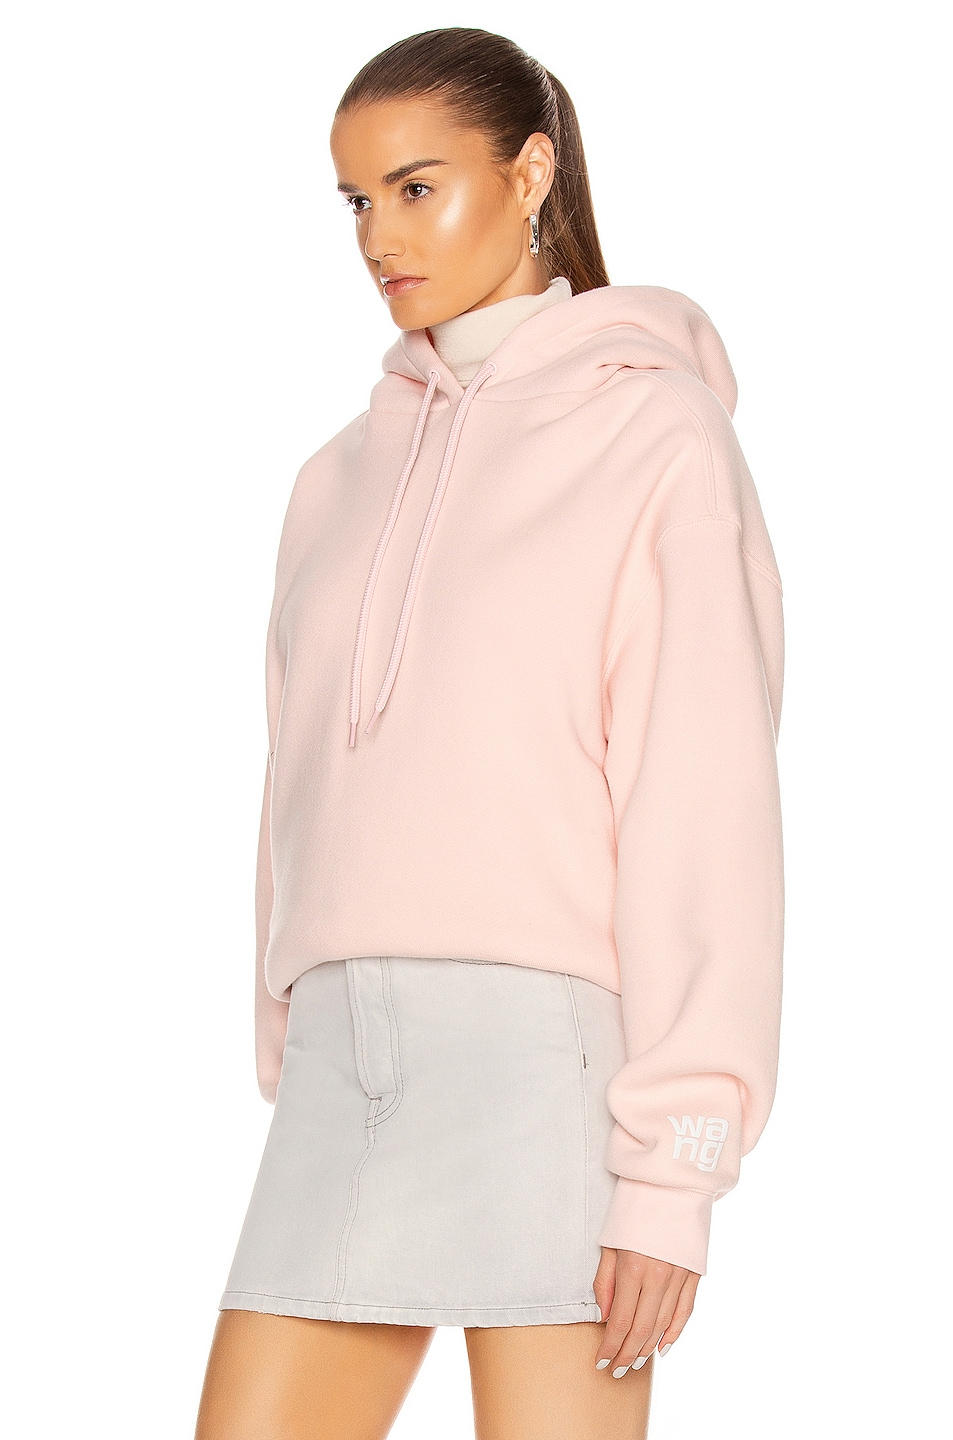 Image 3 of T by Alexander Wang Puff Paint Bubble Hoodie in Light Melon